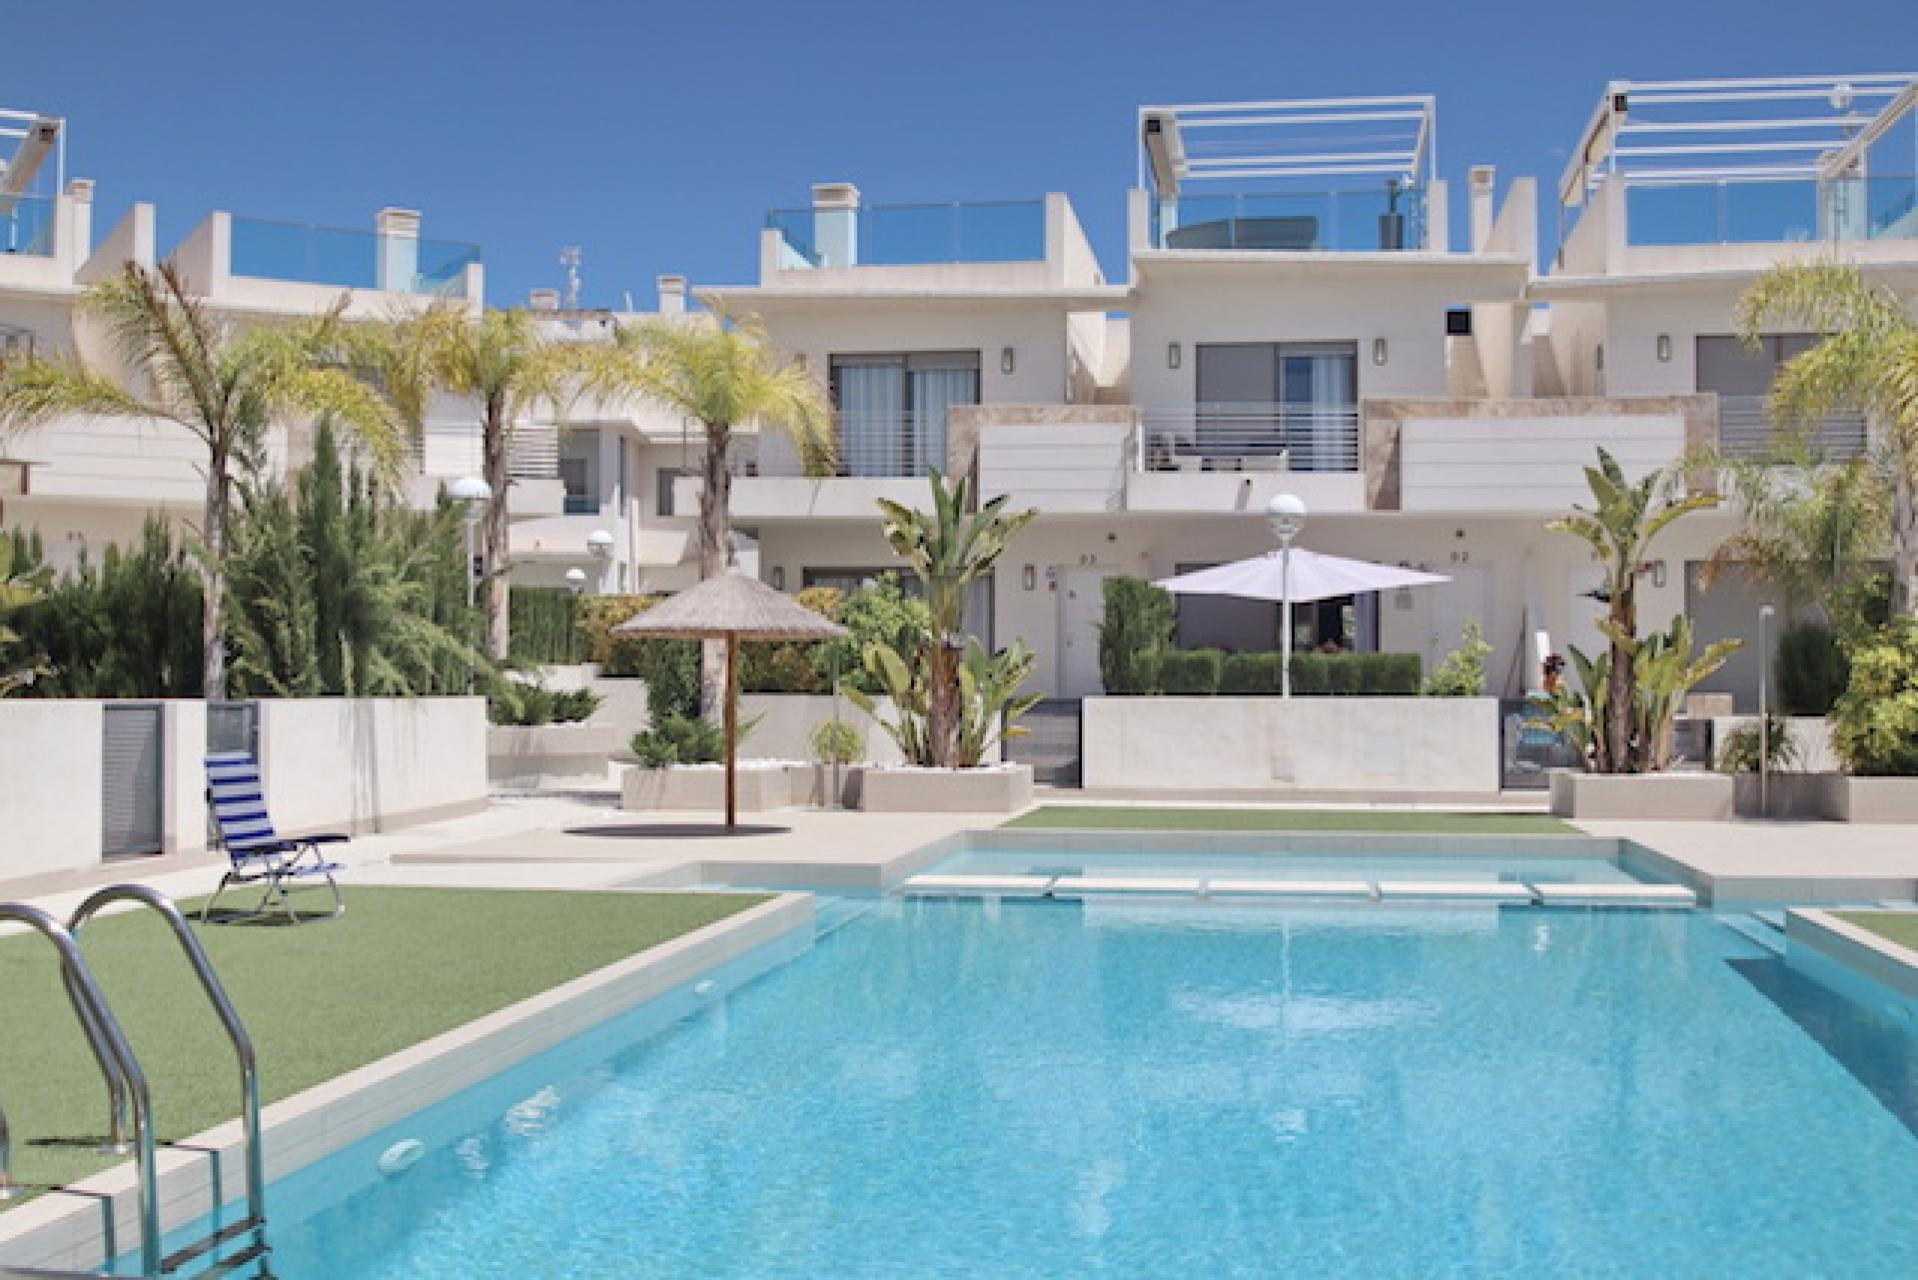 Townhouse in Ciudad Quesada (Alicante)